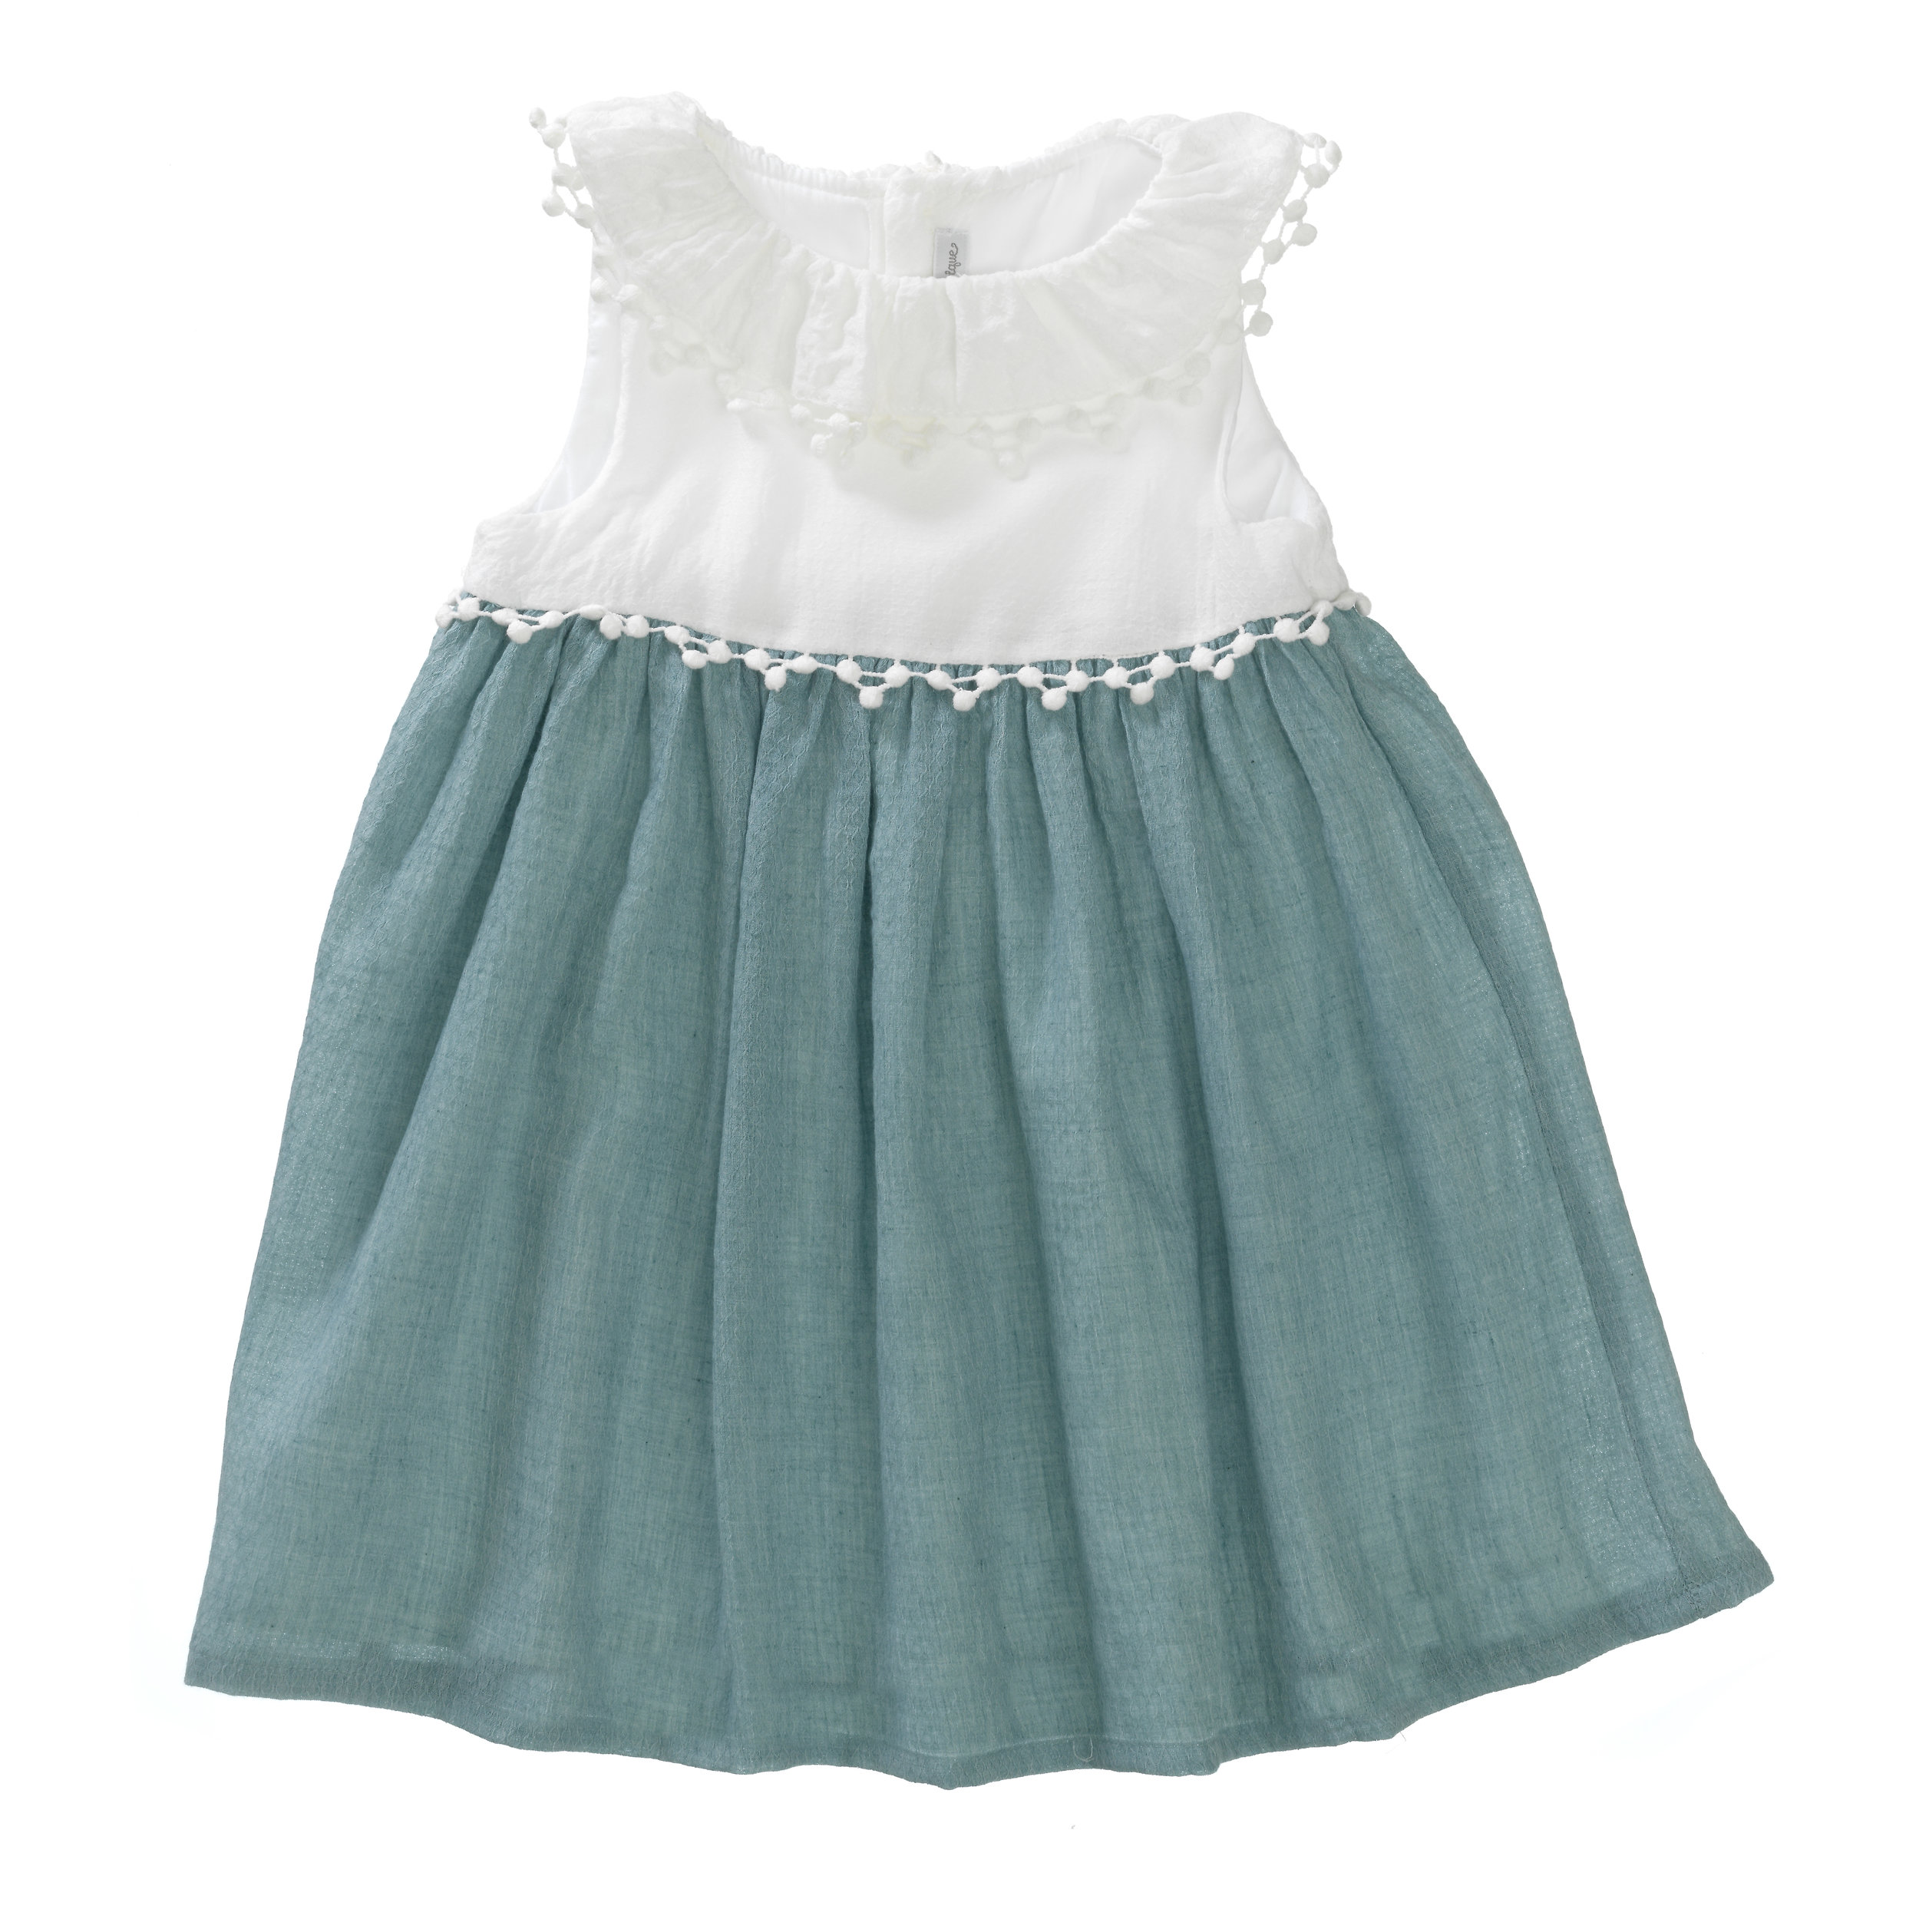 This dress from Pluunge that was kindly gifted, has stunning detailing, that pom pom trim!